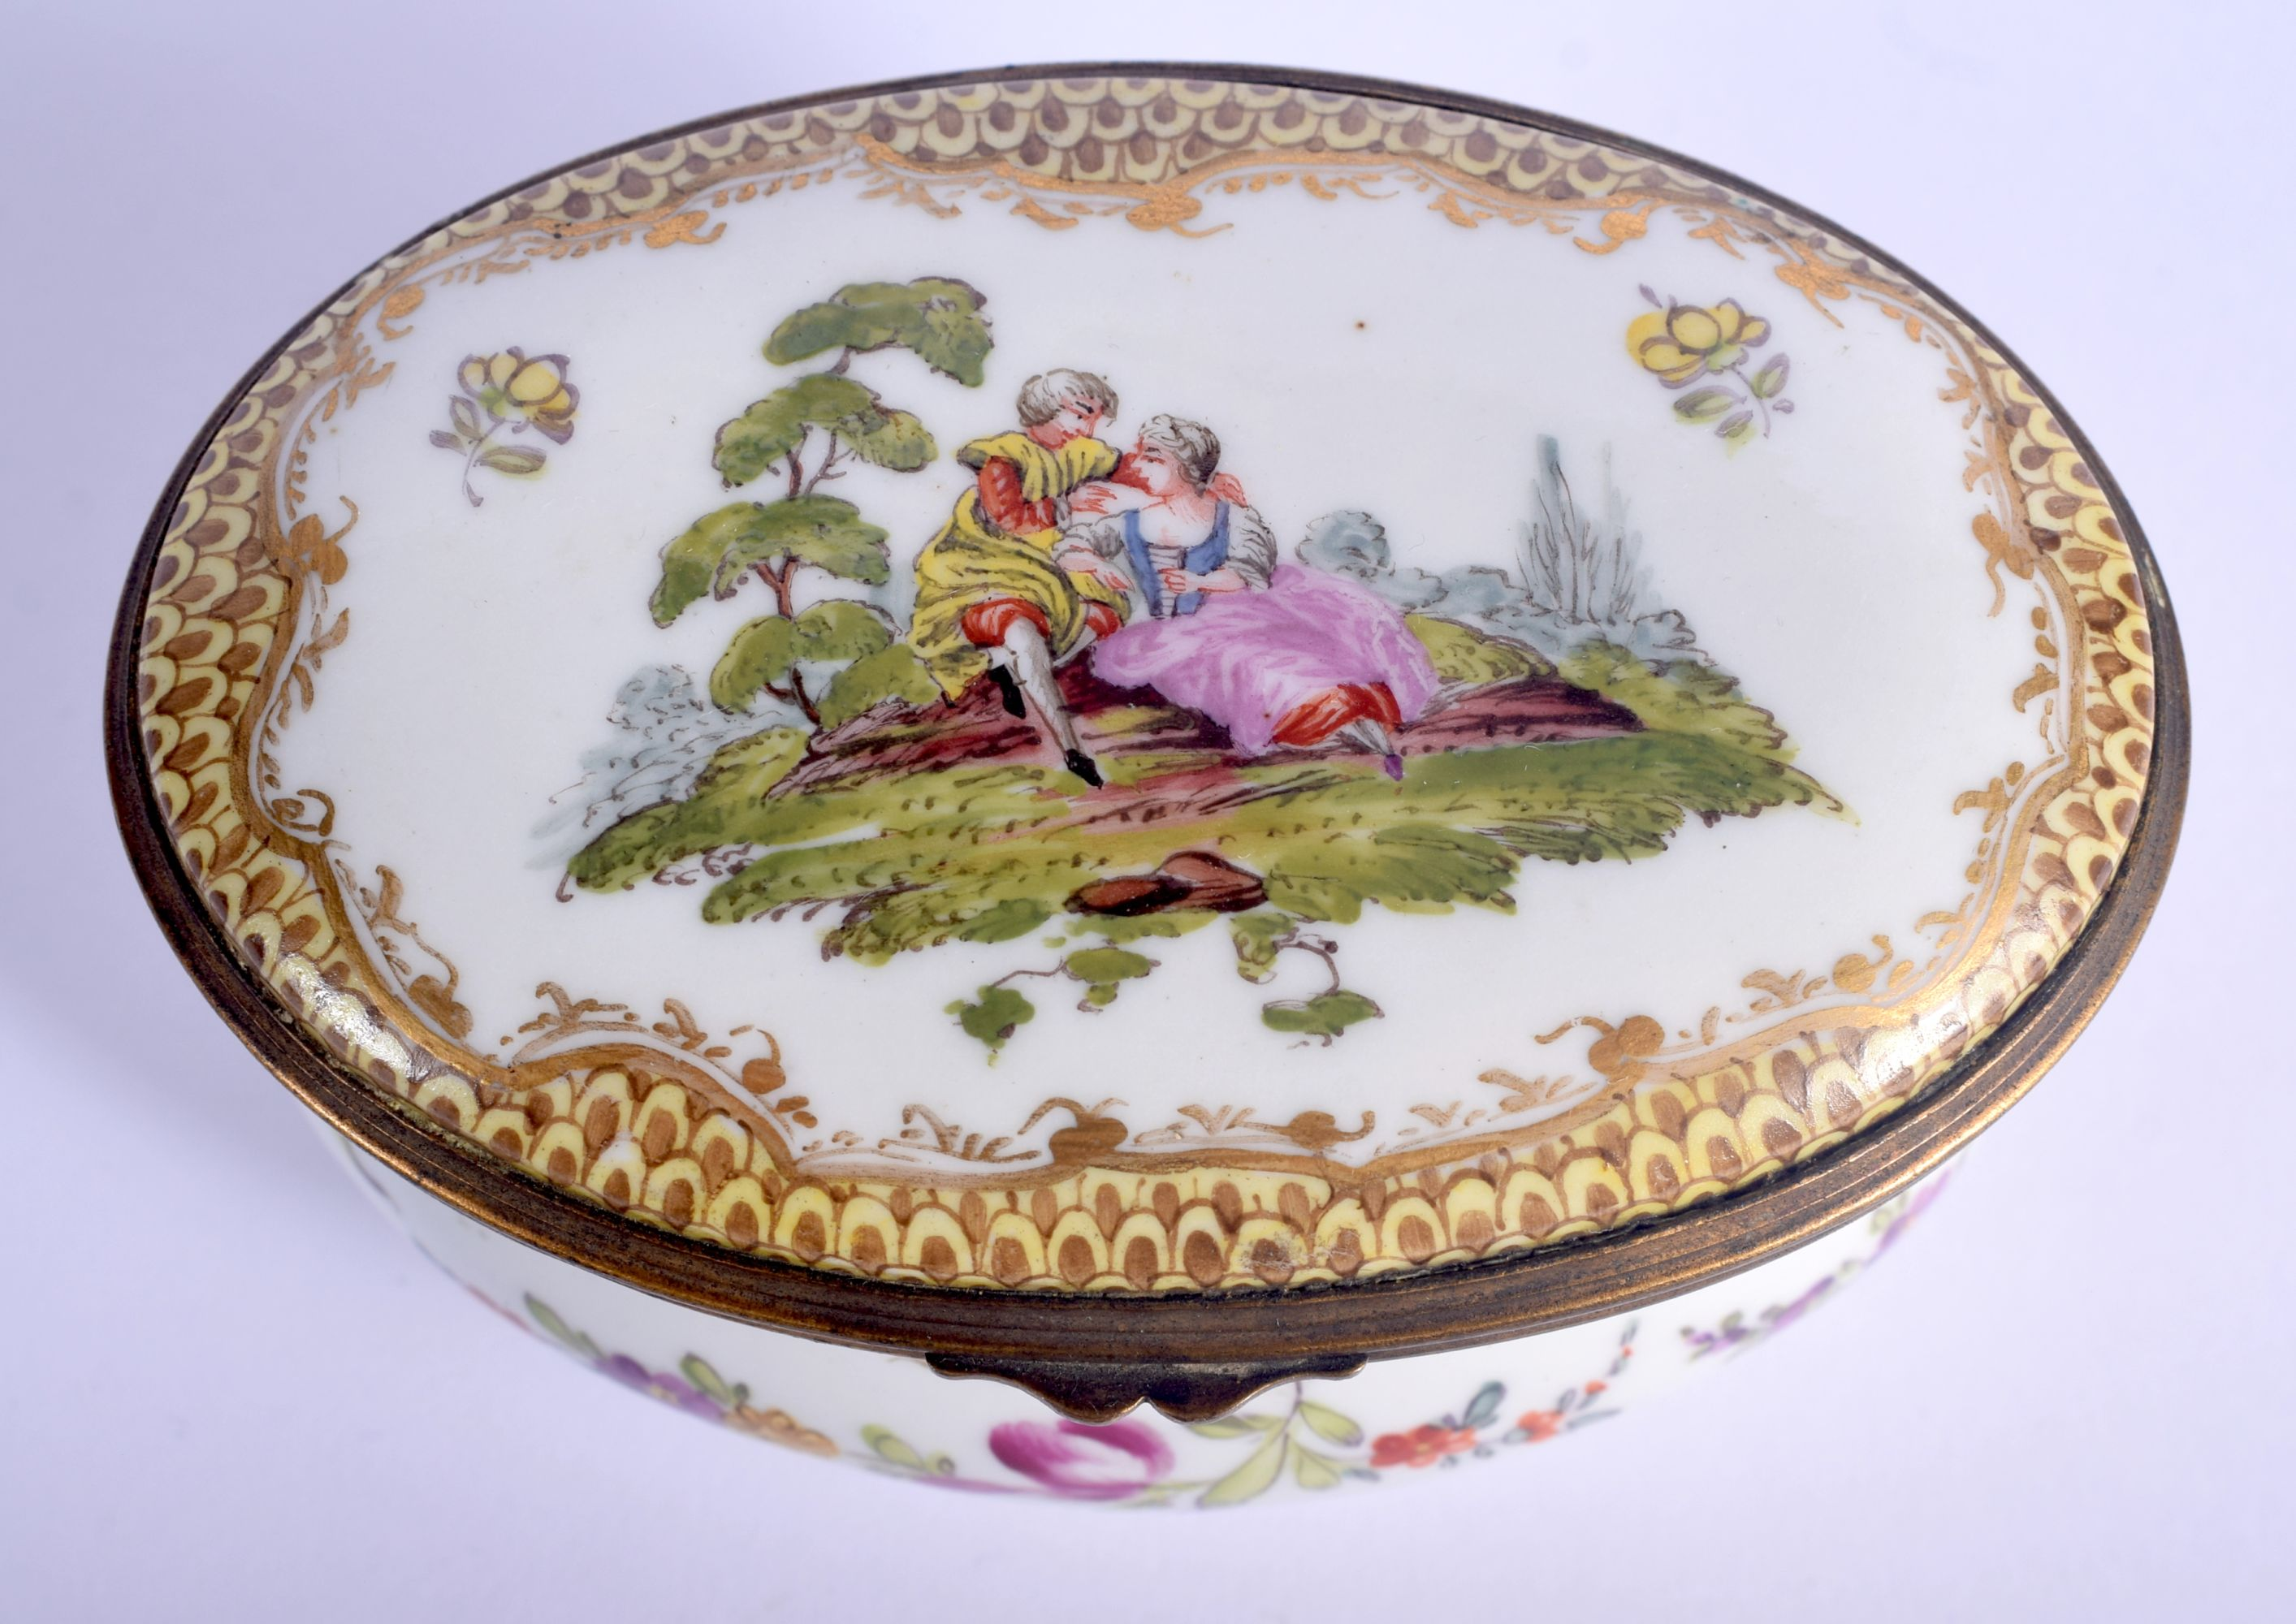 A 19TH CENTURY GERMAN HOSCHT PORCELAIN ENAMELLED BOX painted with figures within landscapes. 10 cm x - Image 3 of 5